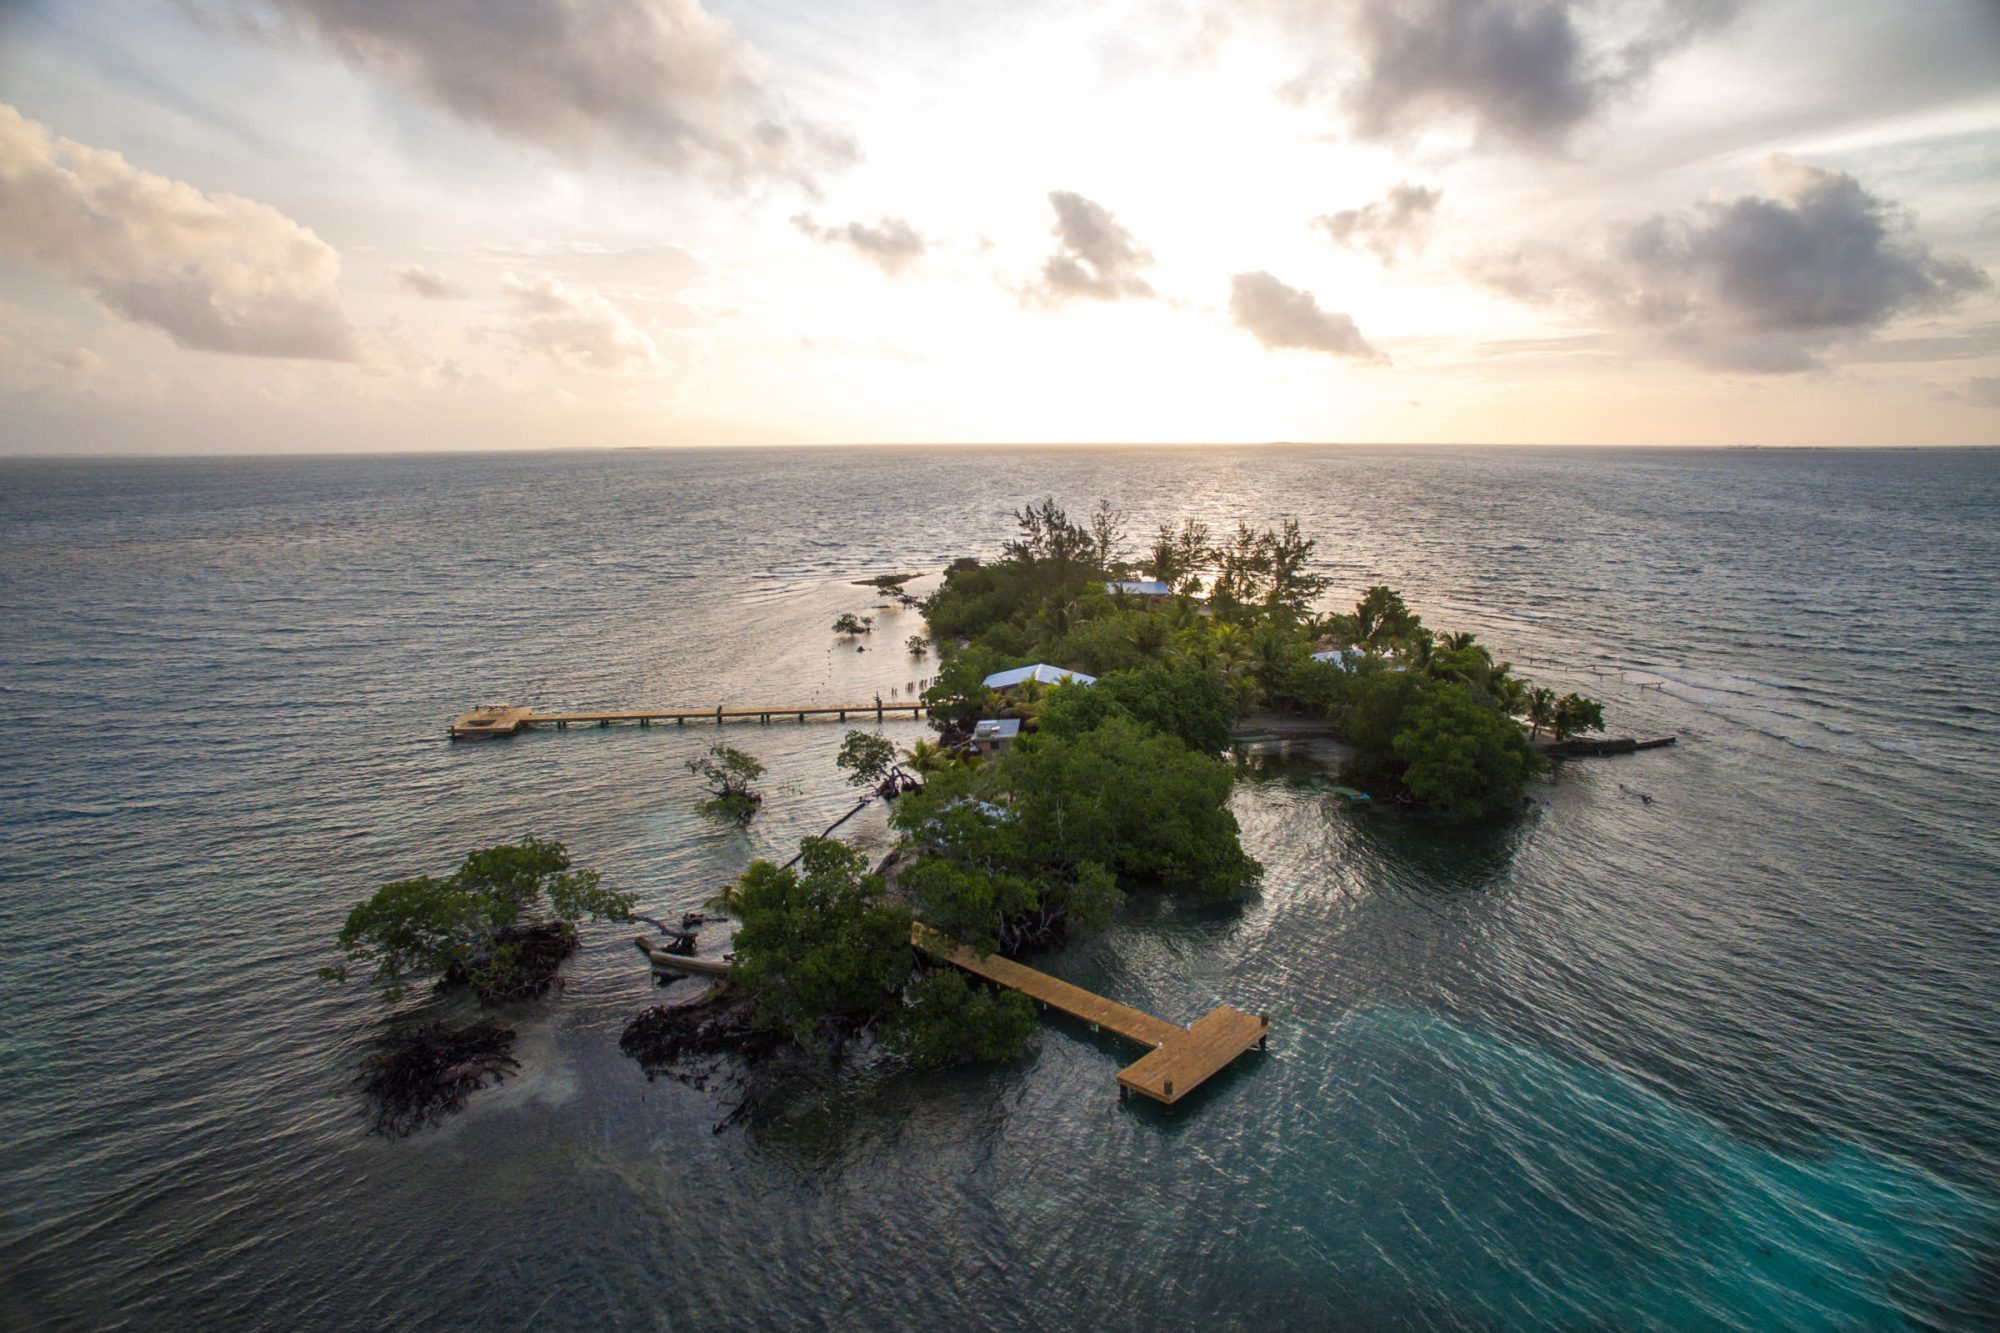 Francis Ford Coppola Owns a Stunning Island off the Coast of Belize—And You Can Stay There